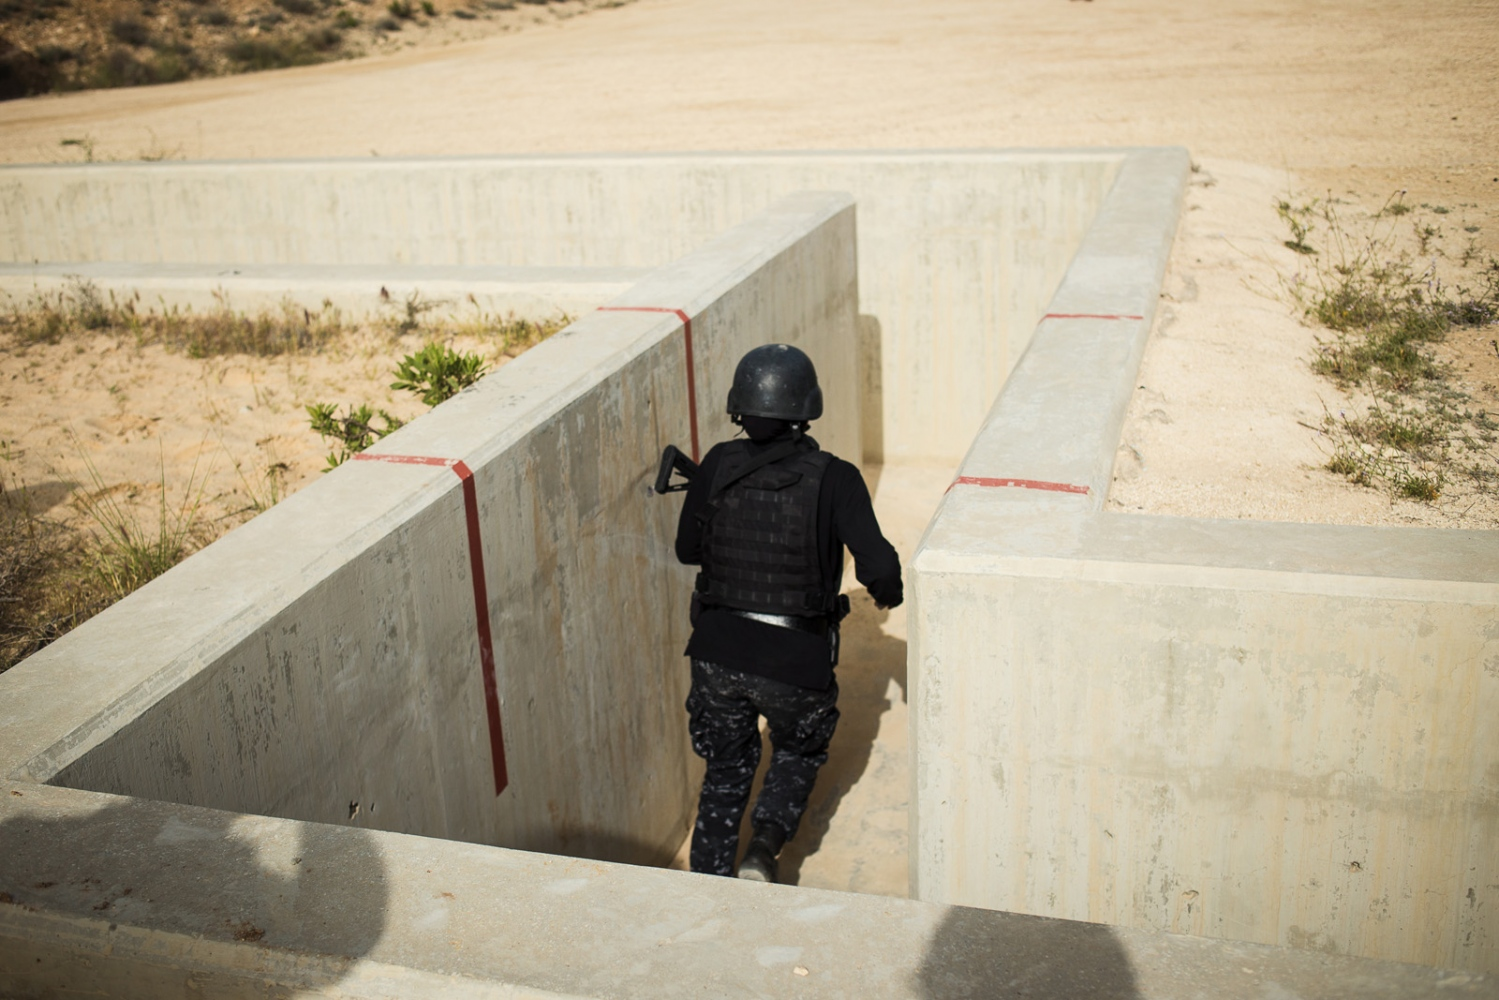 The all-women's Unit 30 SWAT Police team from Jordan competes in the three-gun gauntlet during the seventh annual Warrior Competition at the King Abdullah II Special Operations Training Center near Amman, Jordan, on April 20, 2015.